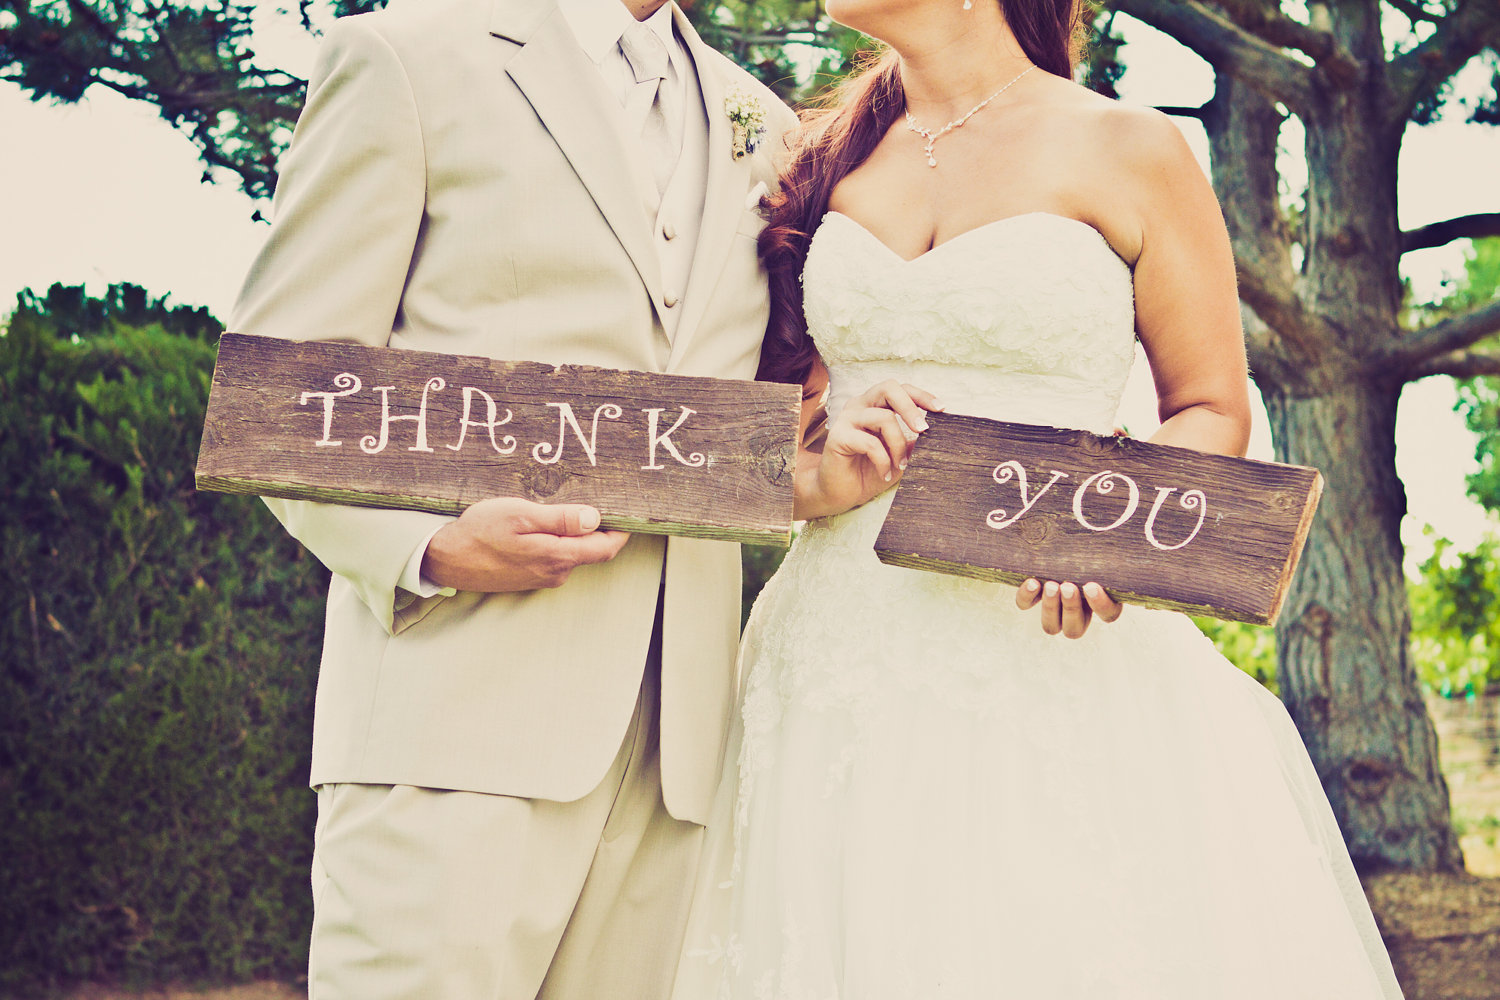 Thank You For The Wedding Gift In Italian : wedding themes and ideas rustic ranch weddings wood signs thank you ...